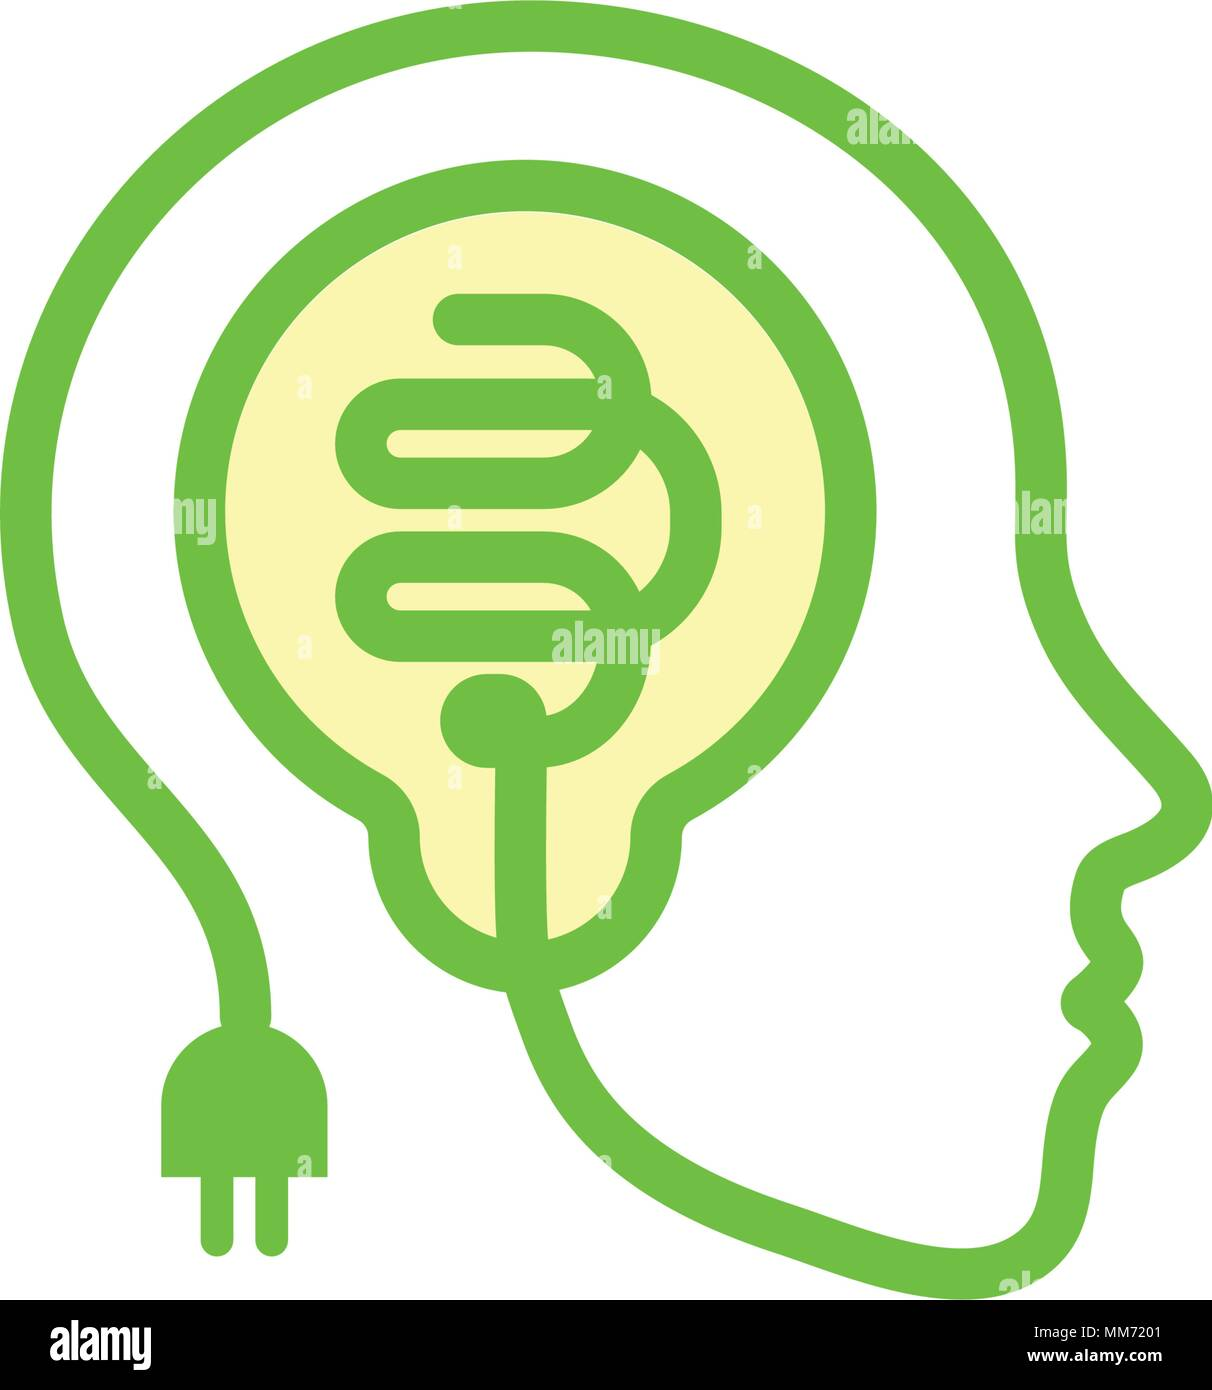 Face Silhouette Contour From Stylized Electric Wire With A Light Bulb Inside The Head Idea Icon Creative Brain Symbol Brainstorming Outline